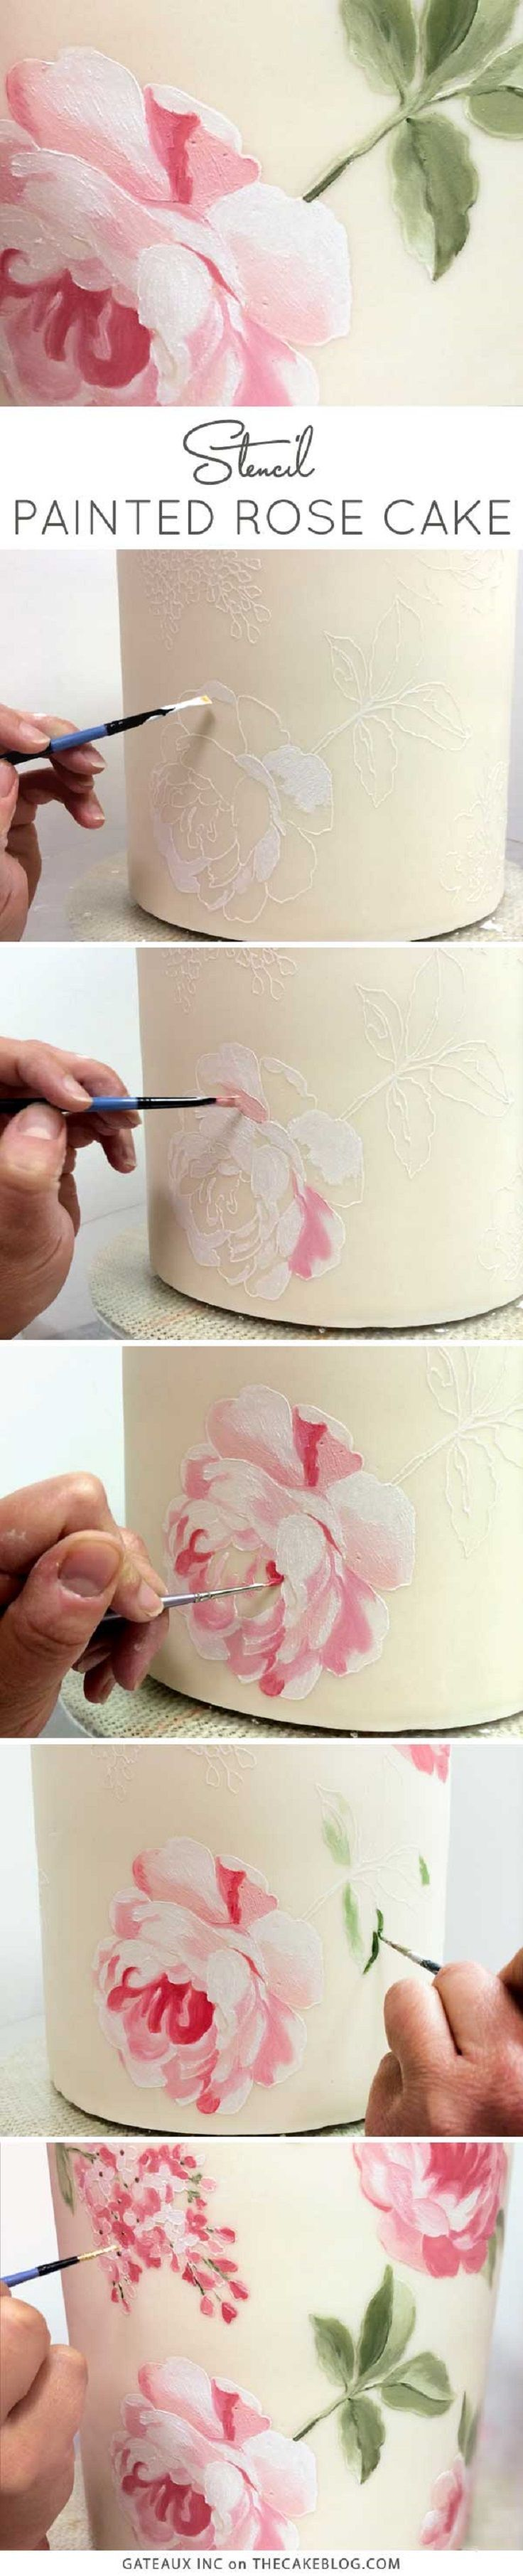 Stencil Hand-Painted Rose Cake - 17 Amazing Cake Decorating Ideas, Tips and Tricks That'll Make You A Pro